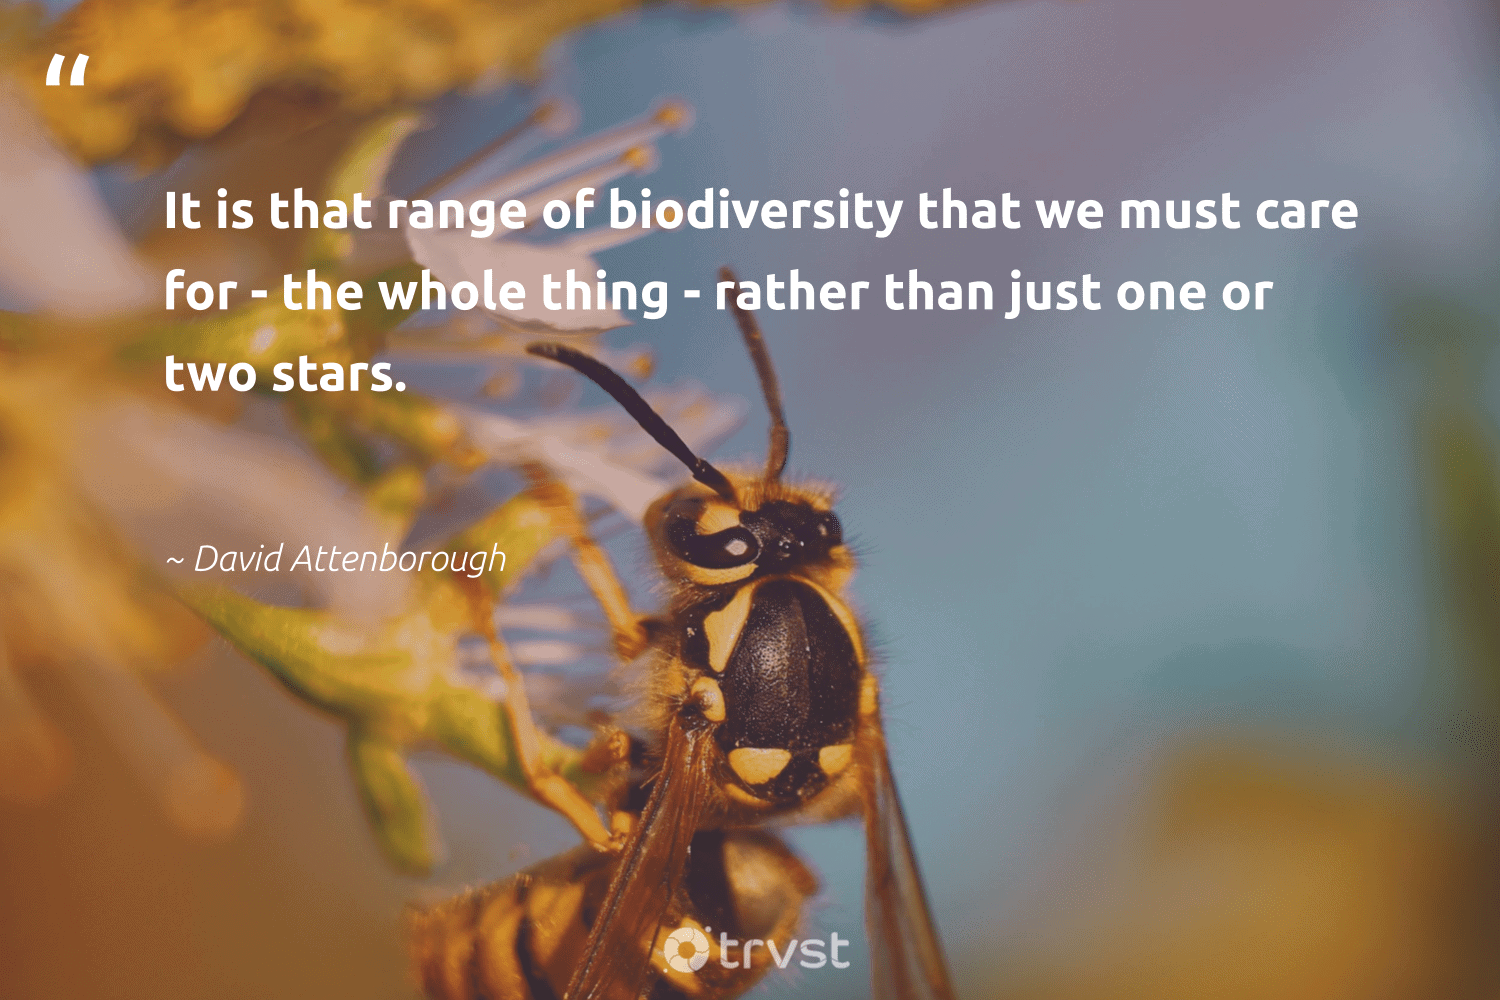 """""""It is that range of biodiversity that we must care for - the whole thing - rather than just one or two stars.""""  - David Attenborough #trvst #quotes #biodiversity #environment #insects #science #bethechange #nature #birds #sanctuary #impact #conservation"""